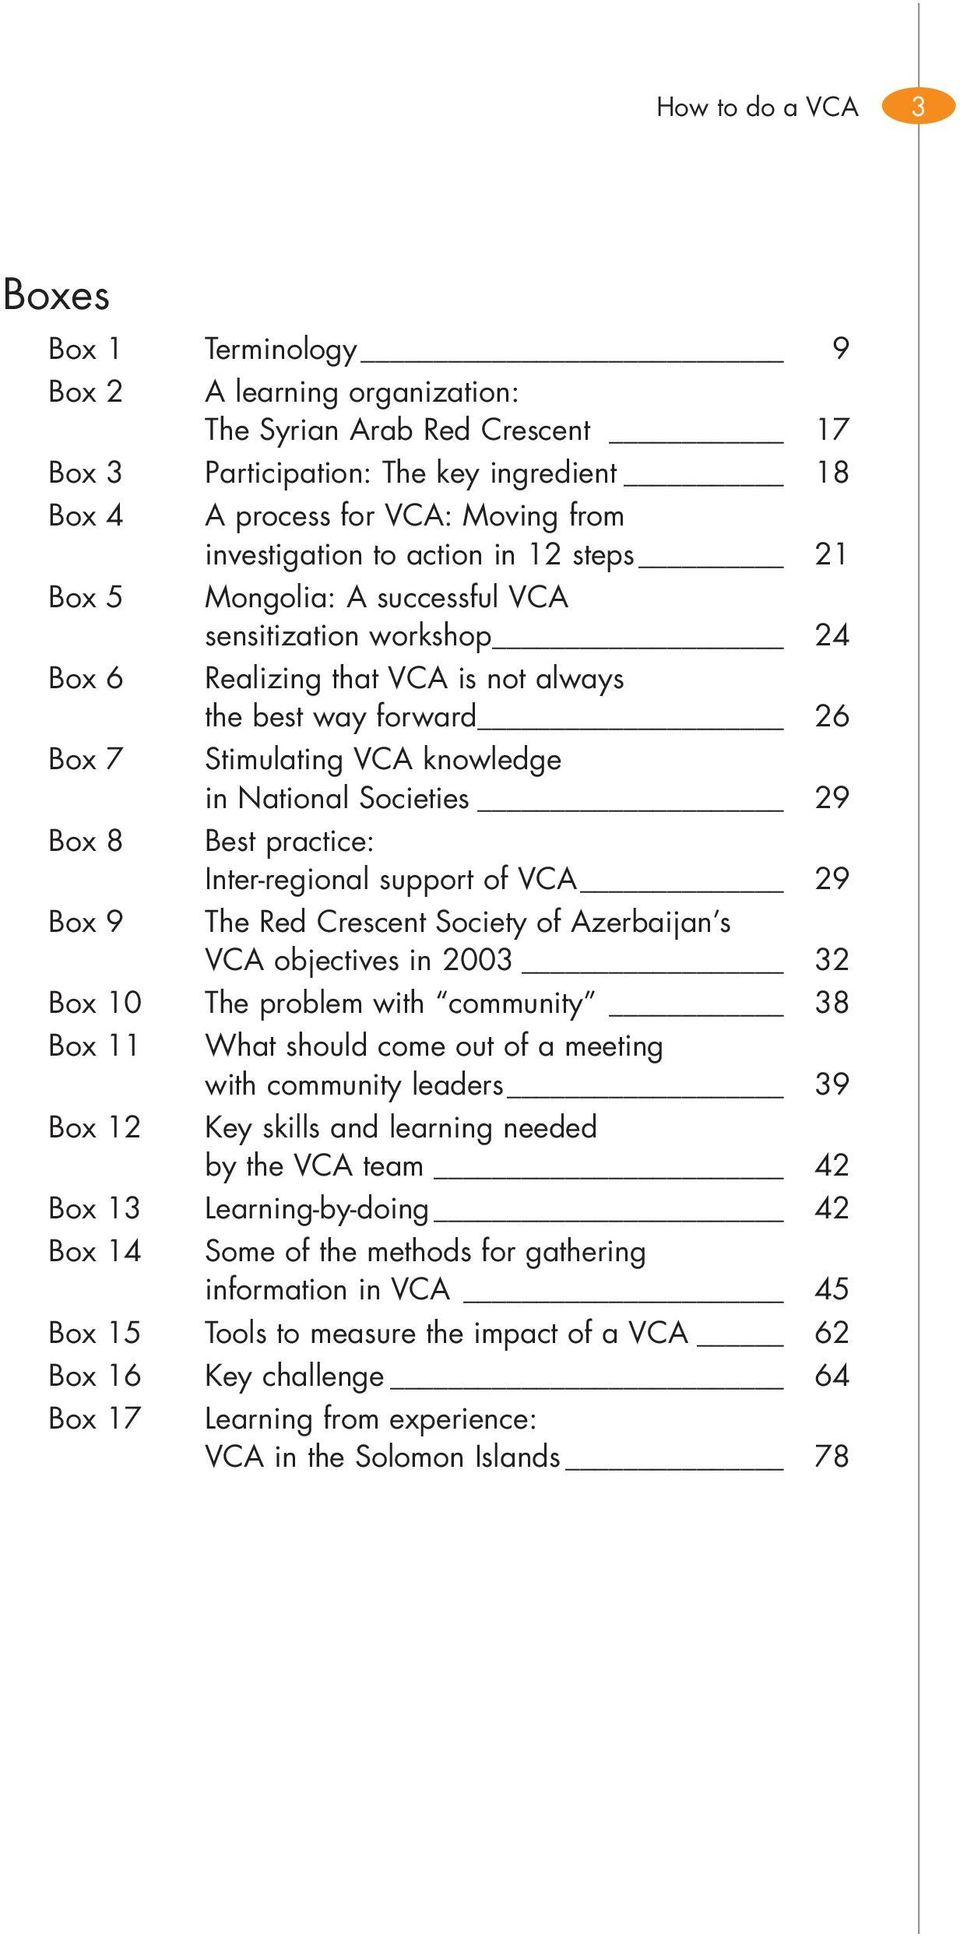 National Societies 29 Box 8 Best practice: Inter-regional support of VCA 29 Box 9 The Red Crescent Society of Azerbaijan s VCA objectives in 2003 32 Box 10 The problem with community 38 Box 11 What